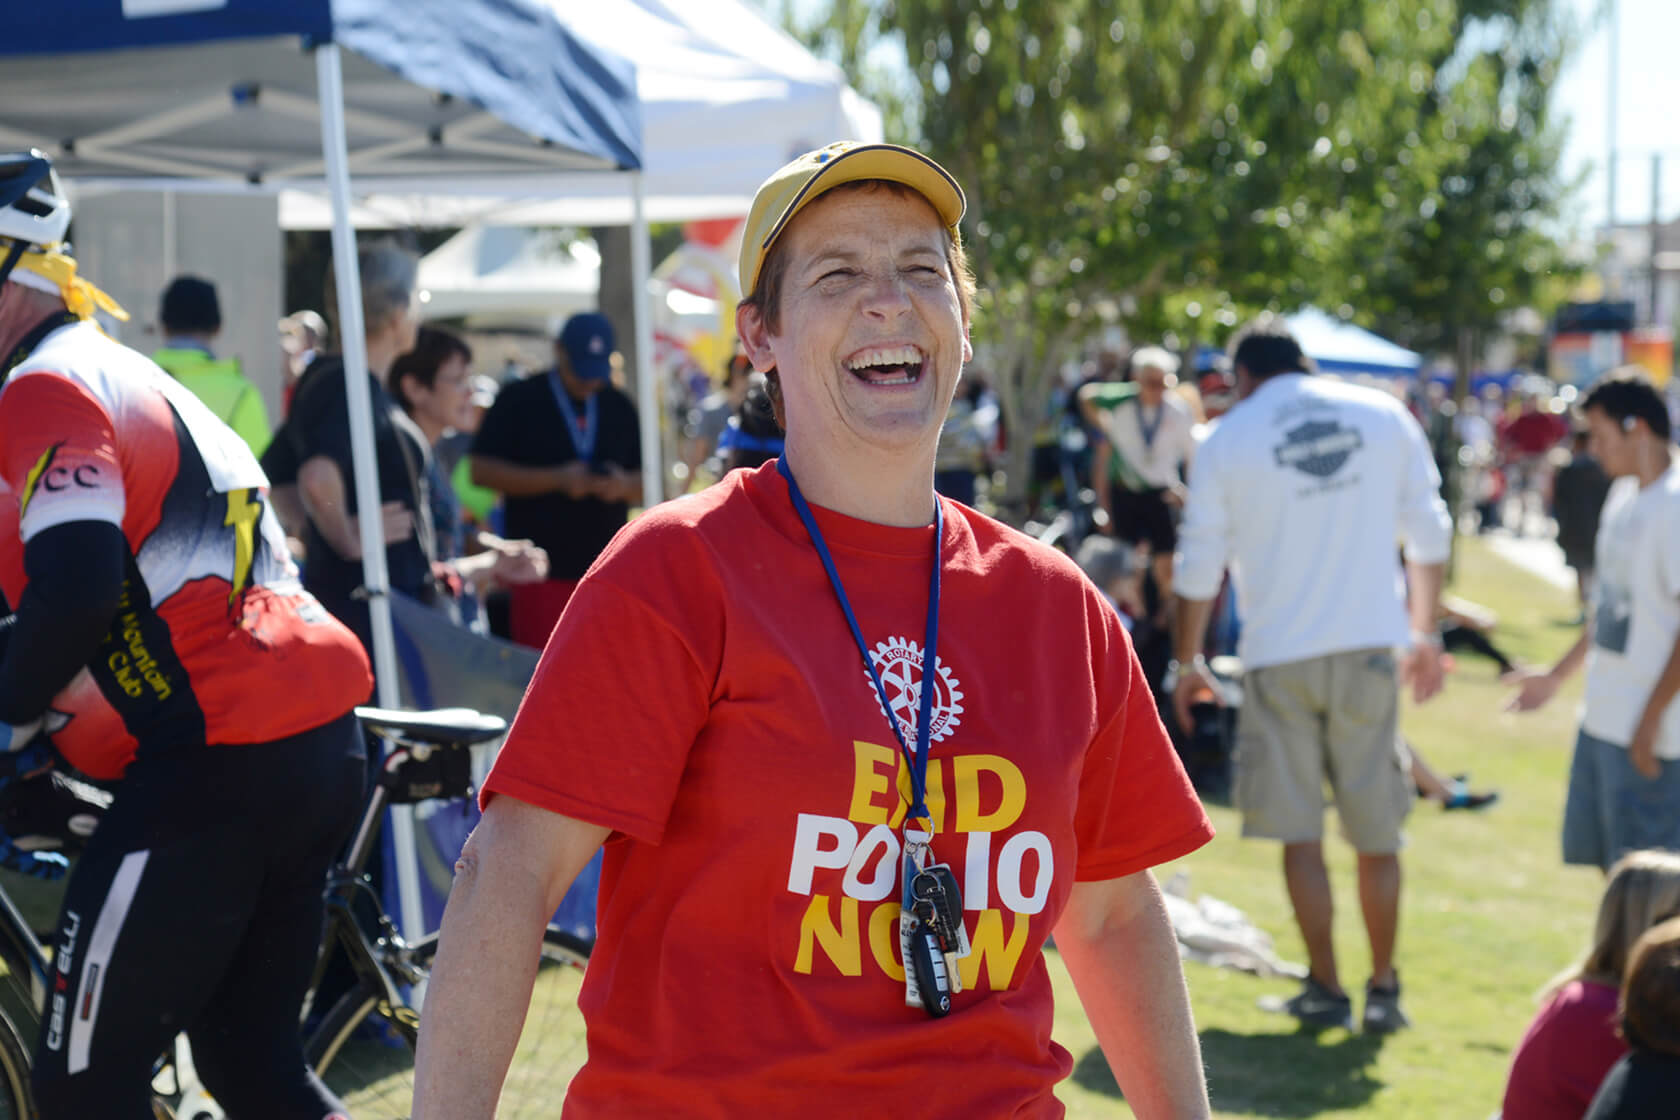 rotary member smiling end polio now event